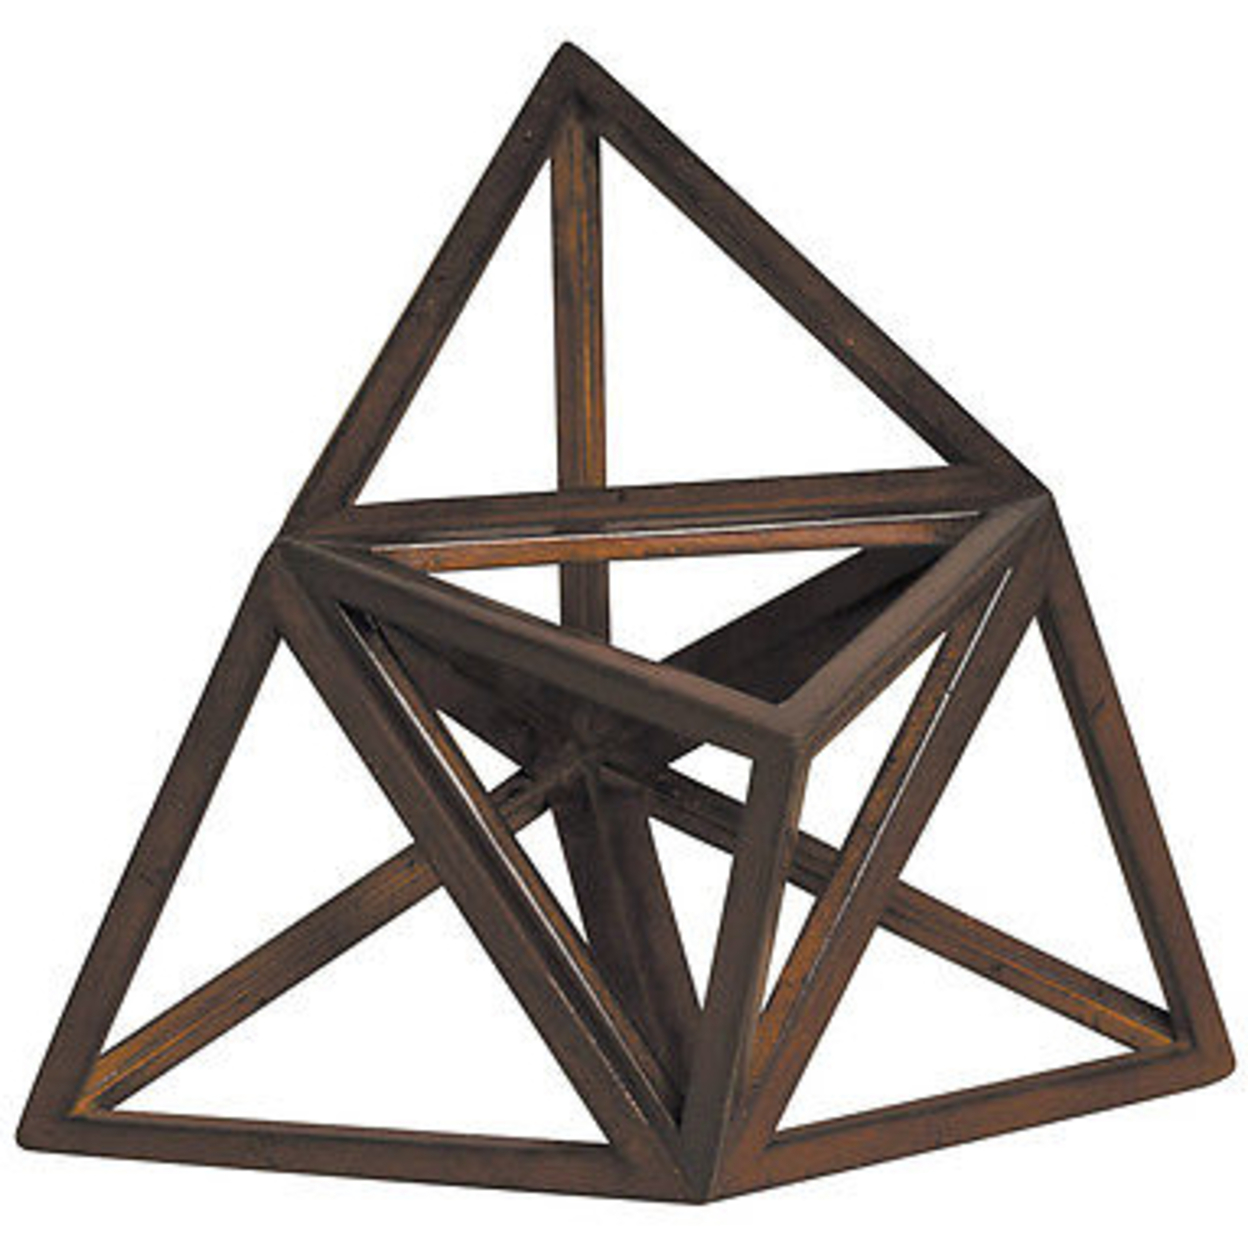 "Elevated Tetrahedron 3D Geometric Fire Wooden Model 8.5"" Polyhedron Home Accent 55b69a57a2771cb9688b646f"